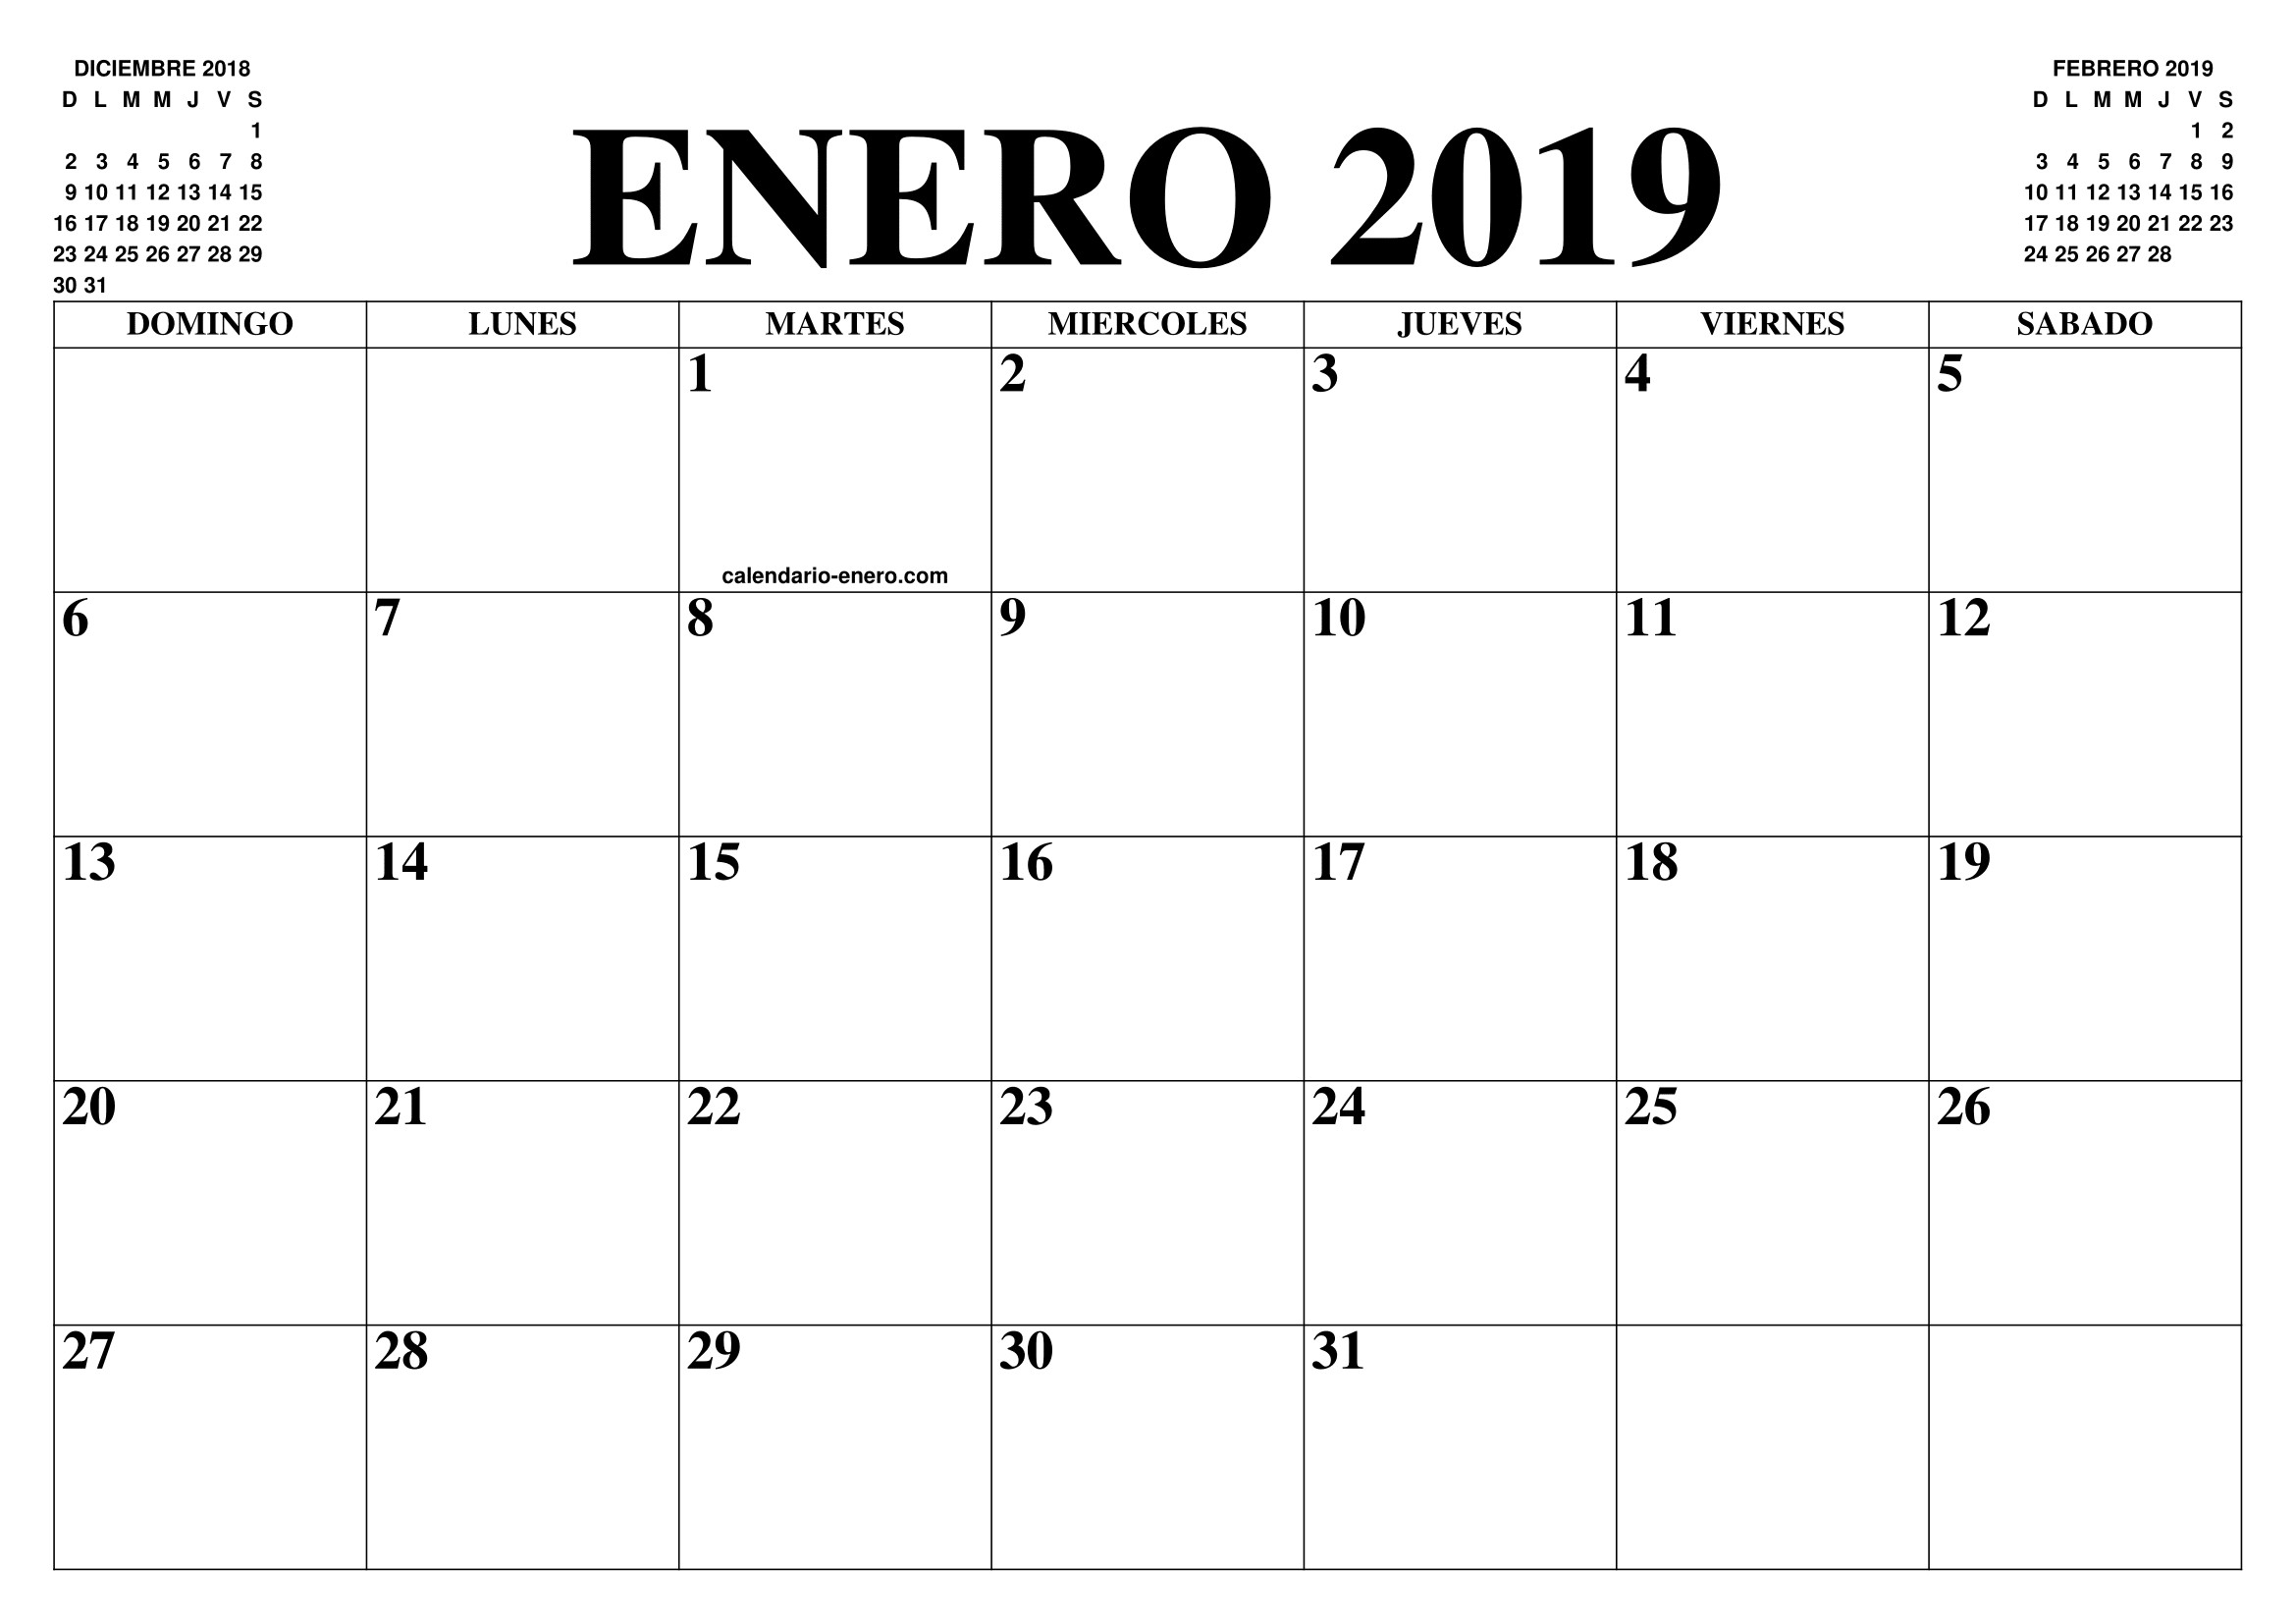 Calendario 2019 Carnaval España Más Reciente Best Calendario Del Mes De Enero Y Febrero Image Collection